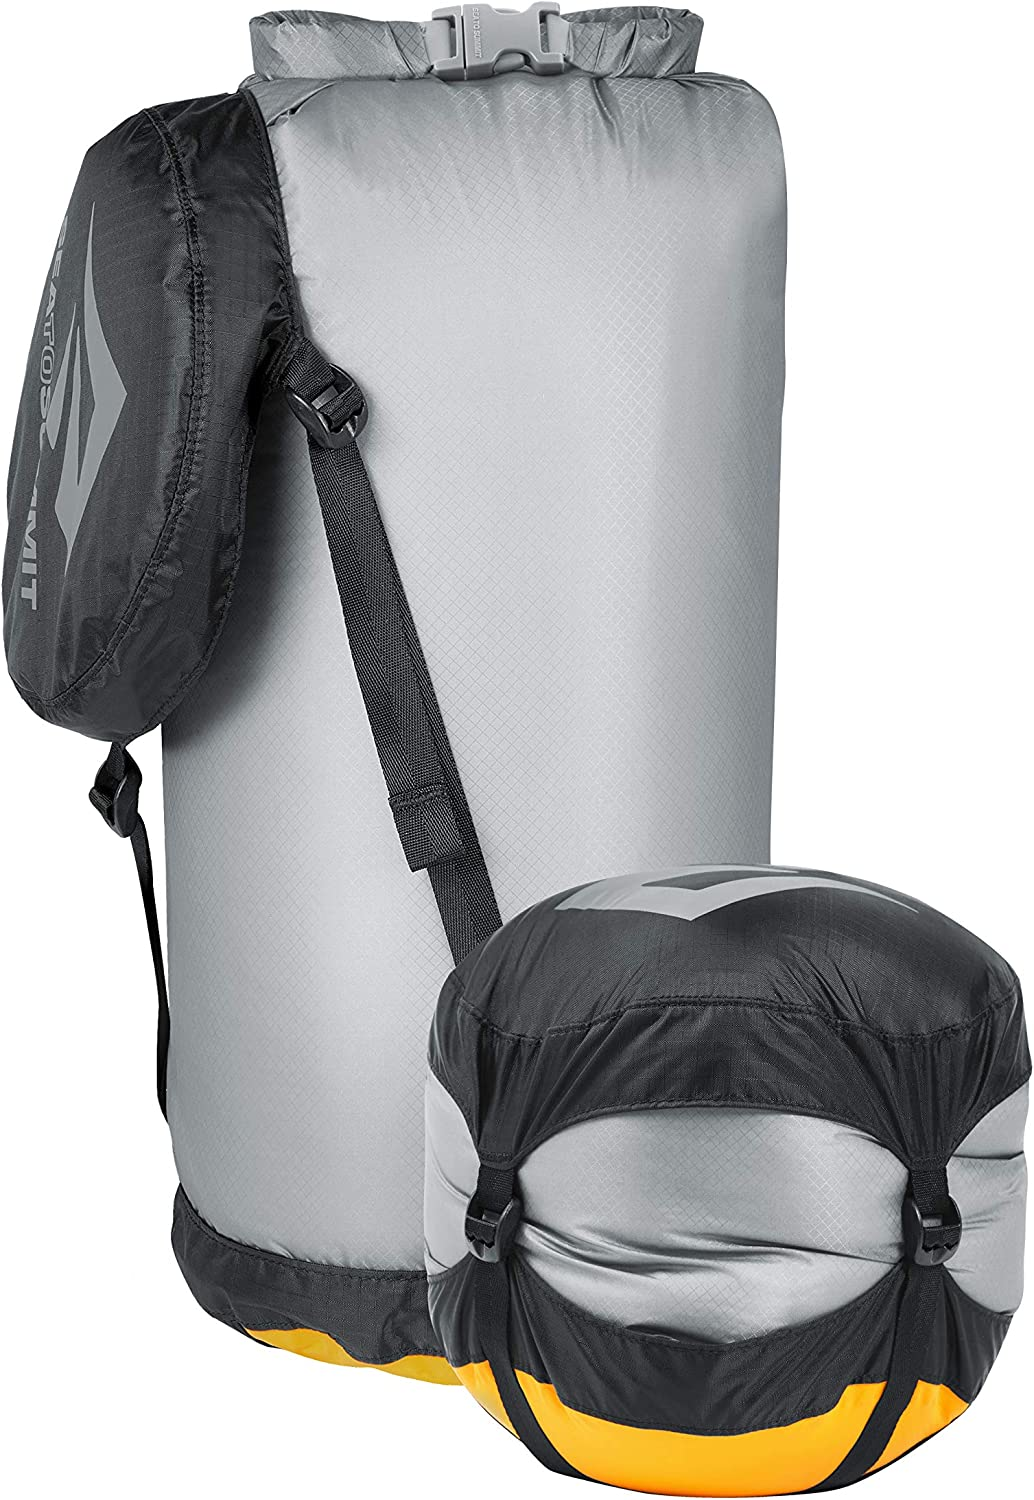 sac etanche float tube compact